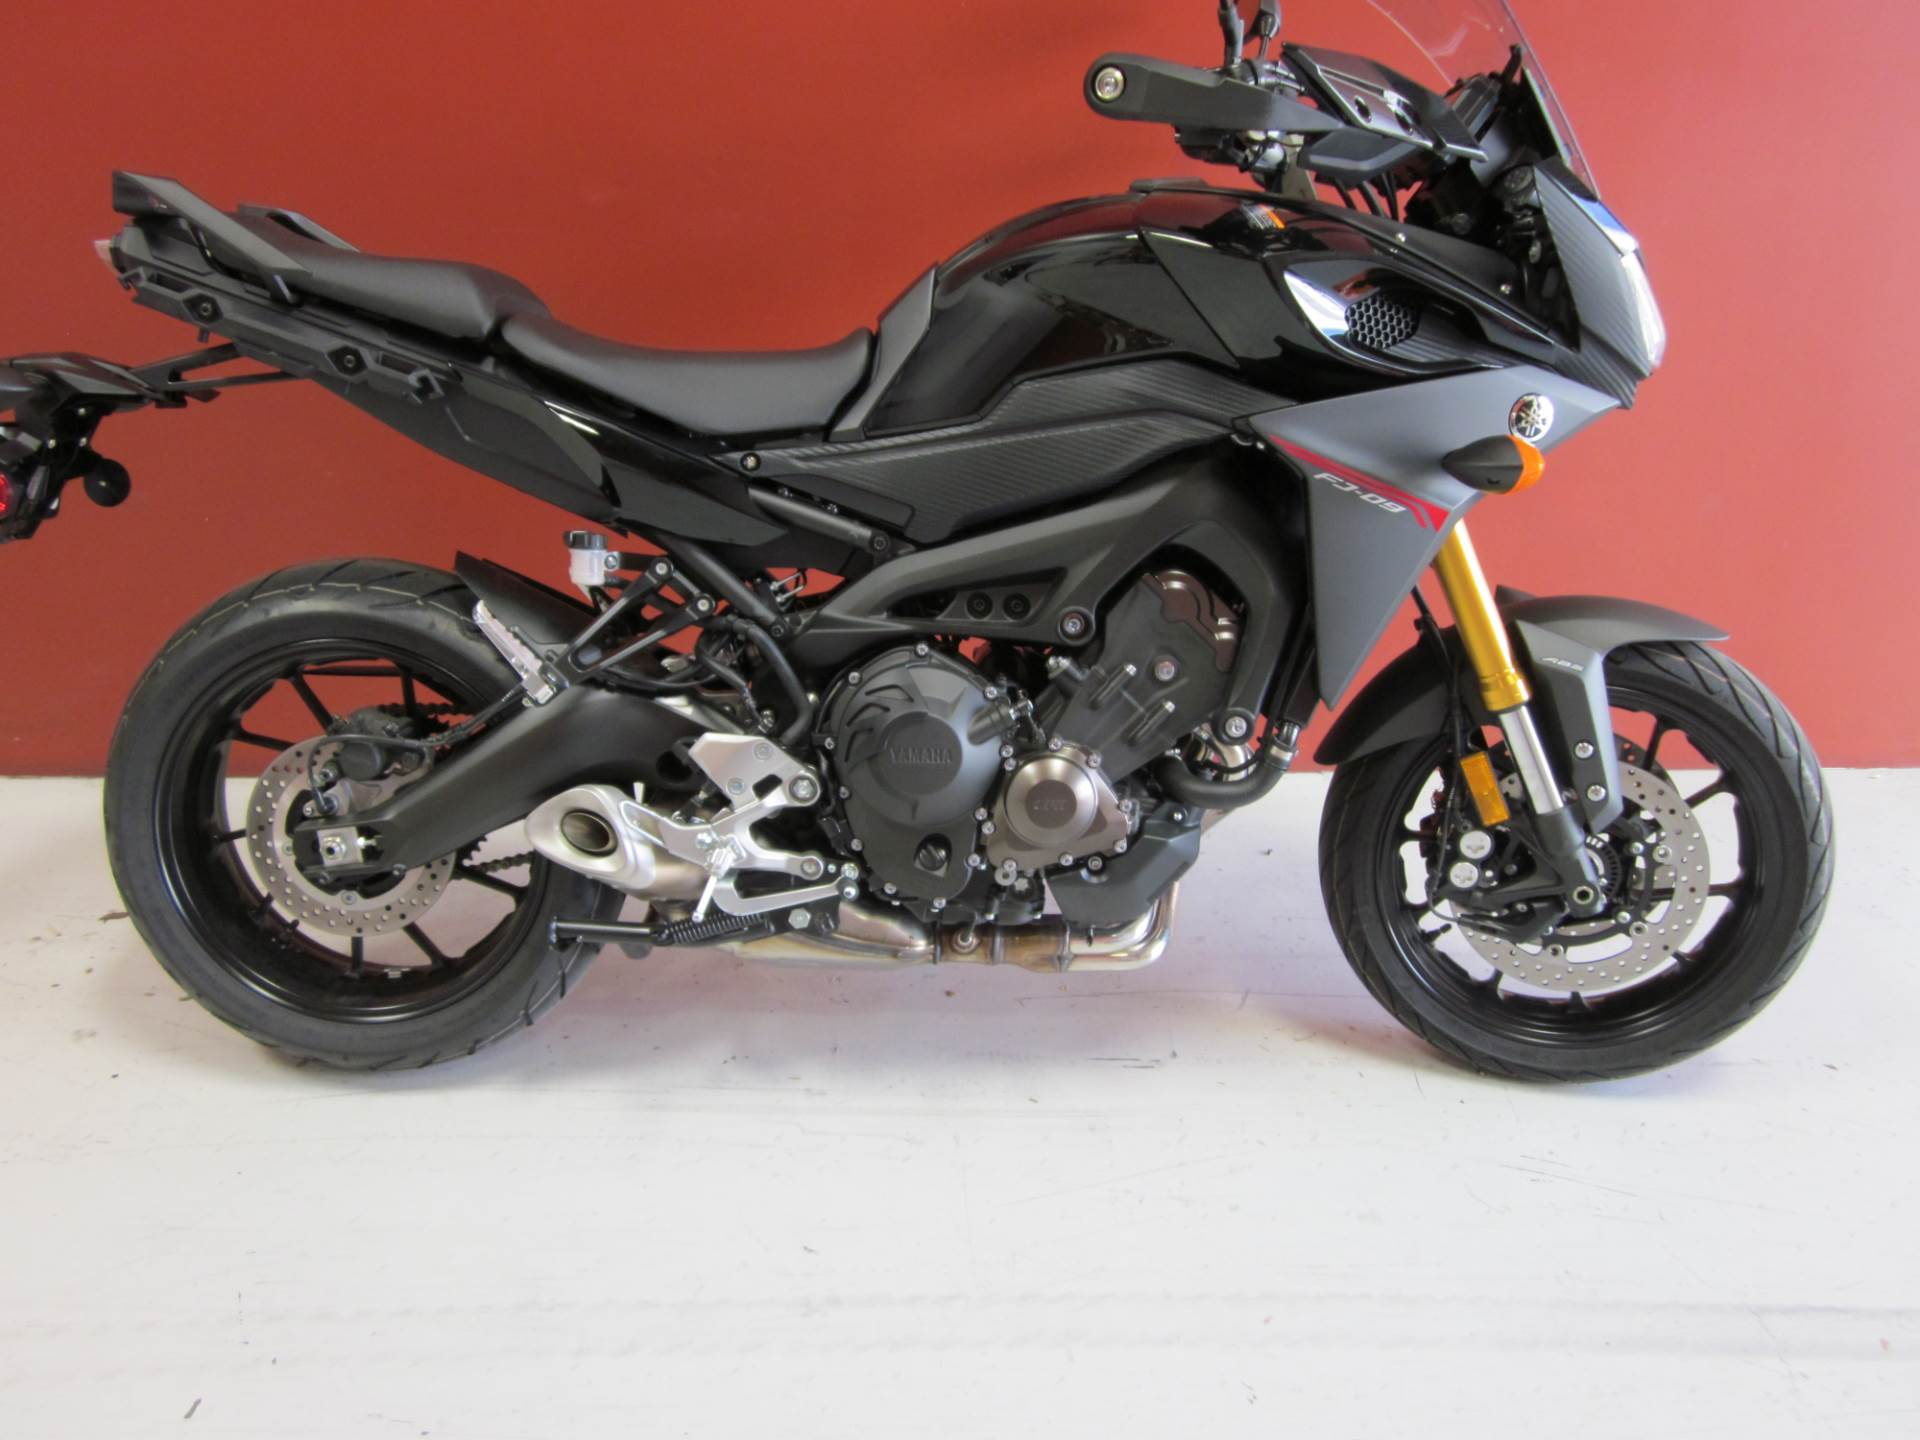 2016 Yamaha FJ-09 for sale 29944